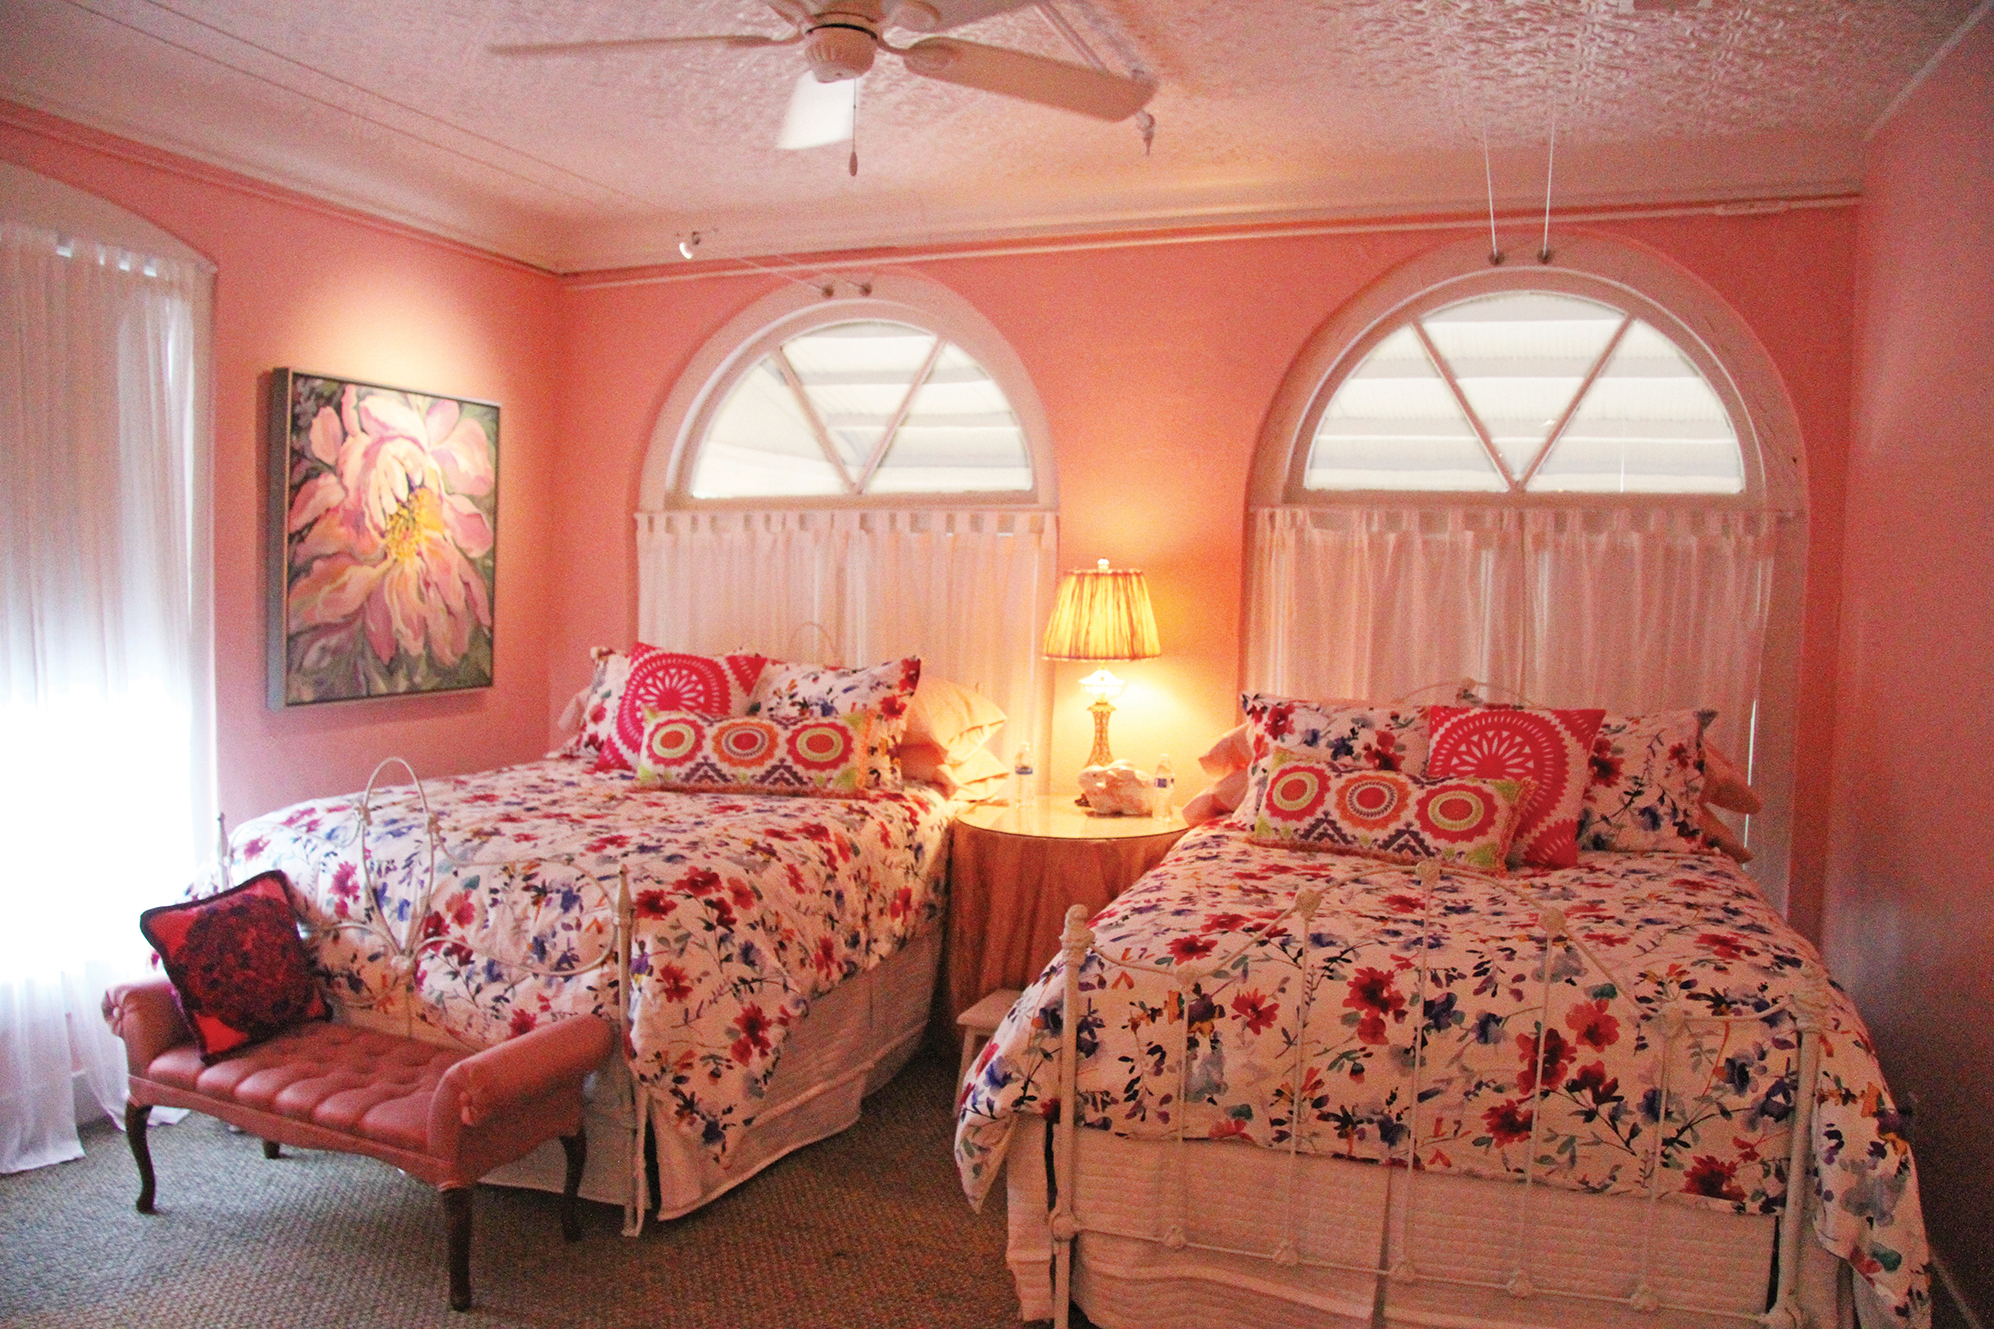 ROOM 1 - CHURCH STREET - TWO QUEEN BEDS